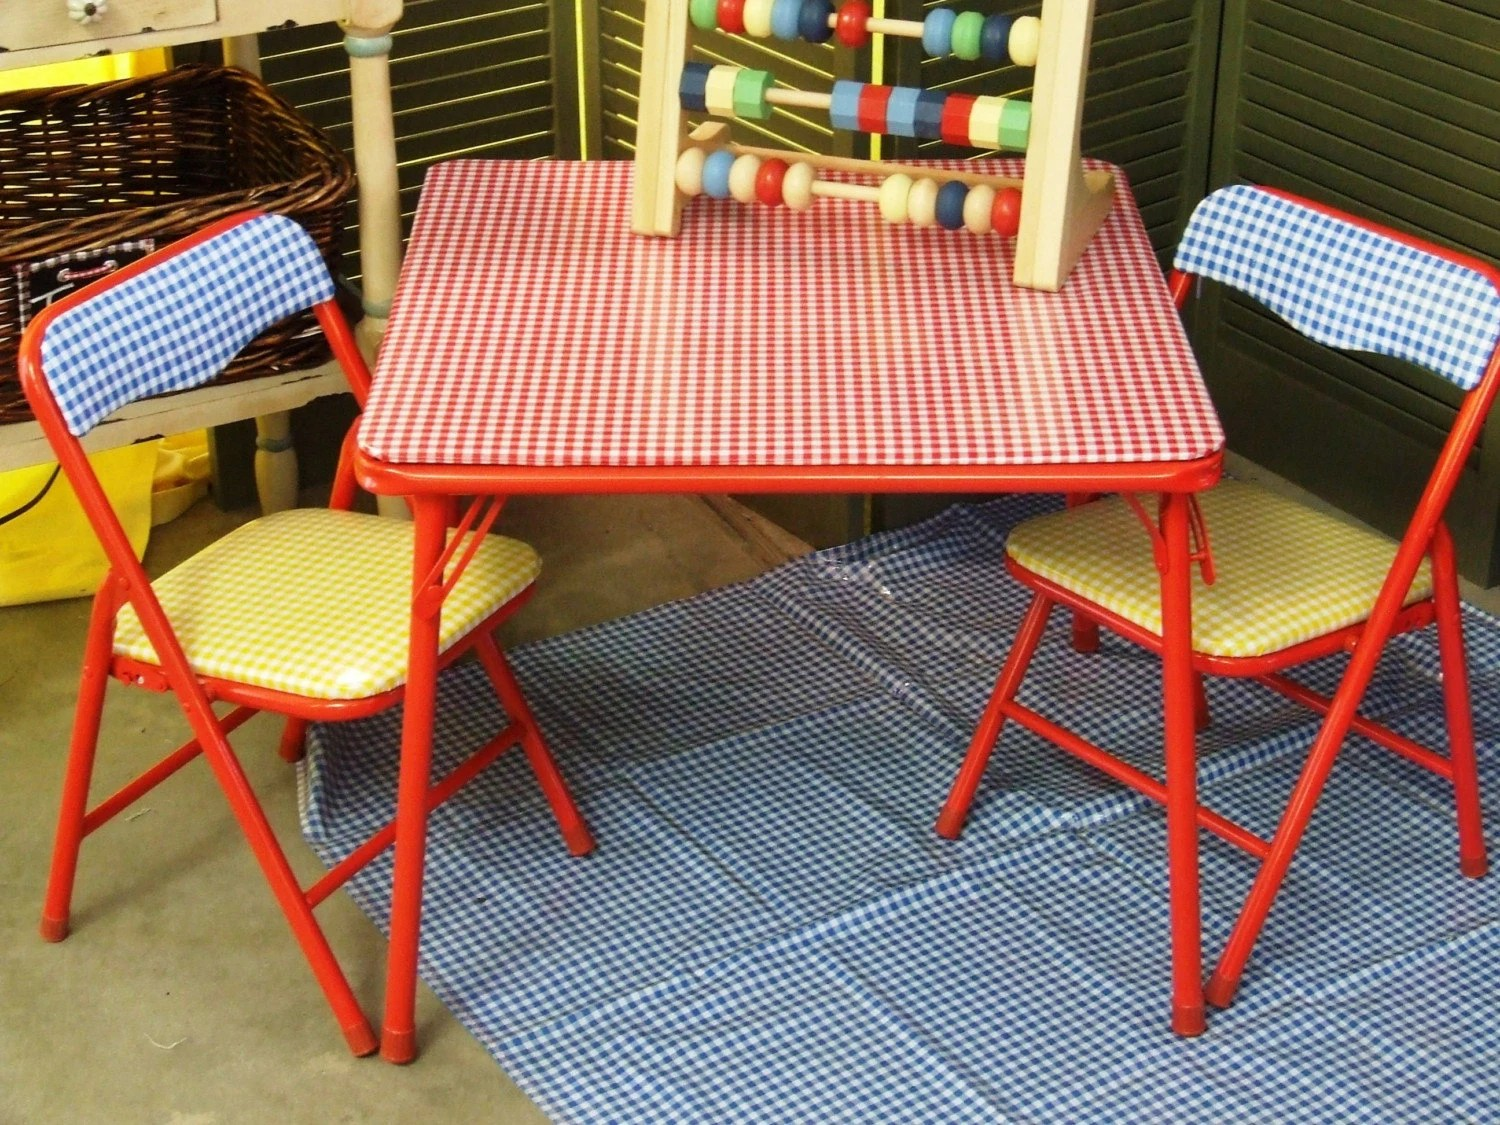 CLEARANCE Chalkydoodles Childrens TABLE and CHAIR Set Table